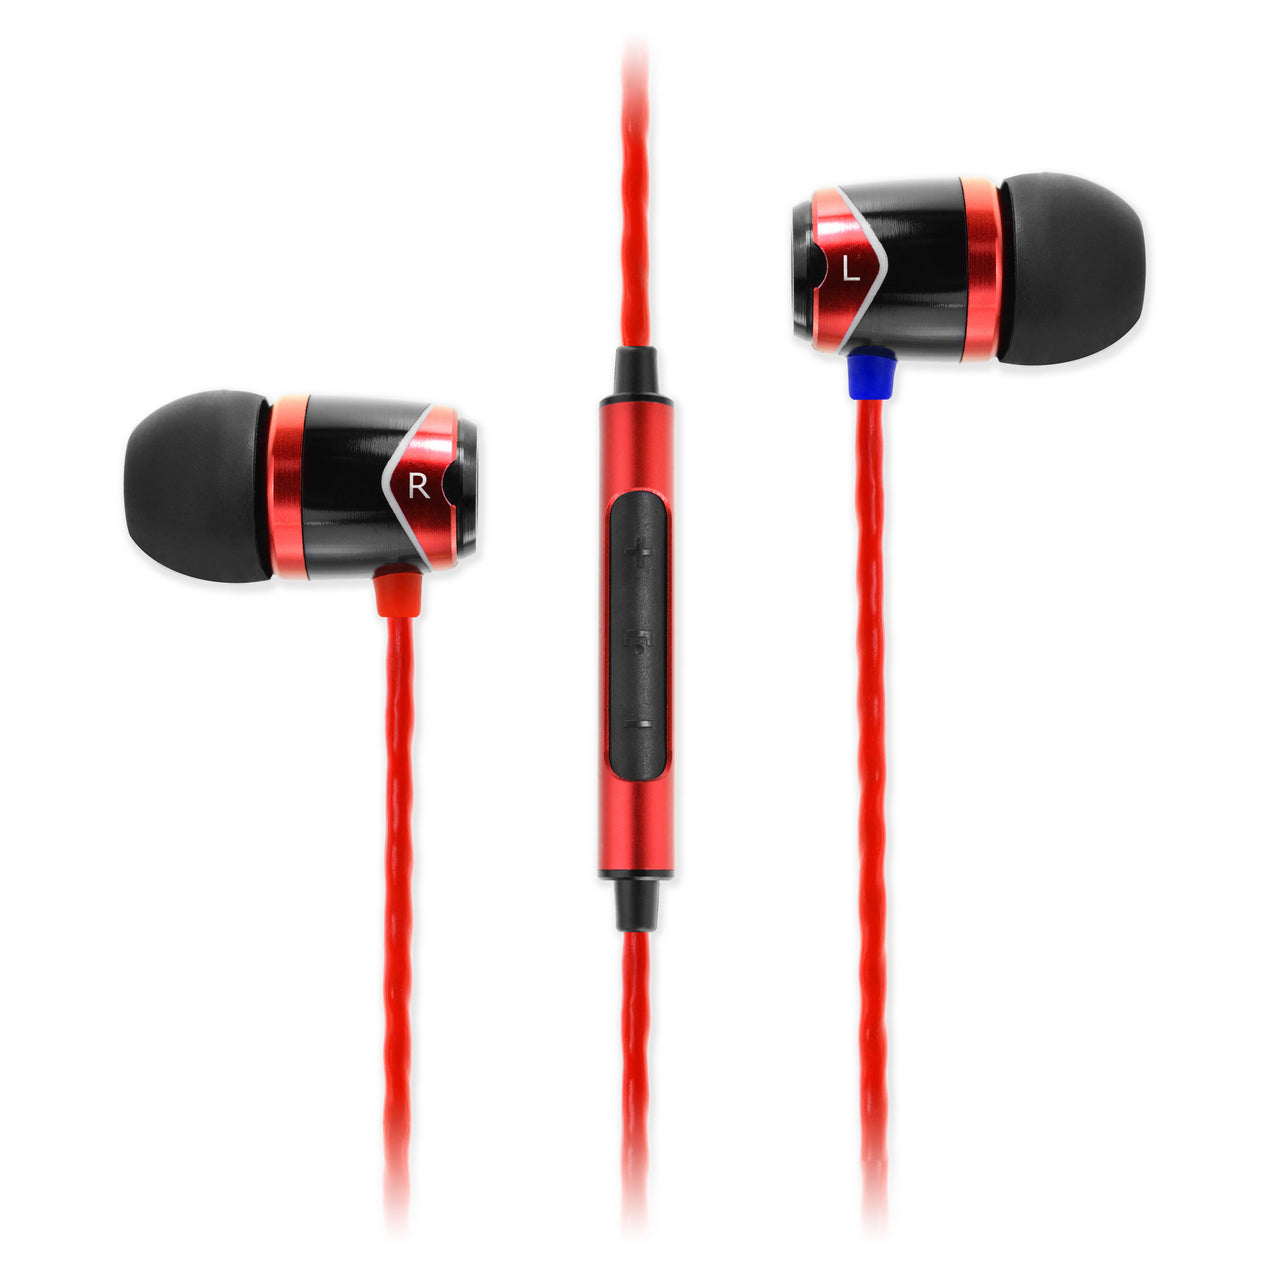 SoundMAGIC E10C In Ear Isolating Earphones with Mic, Red